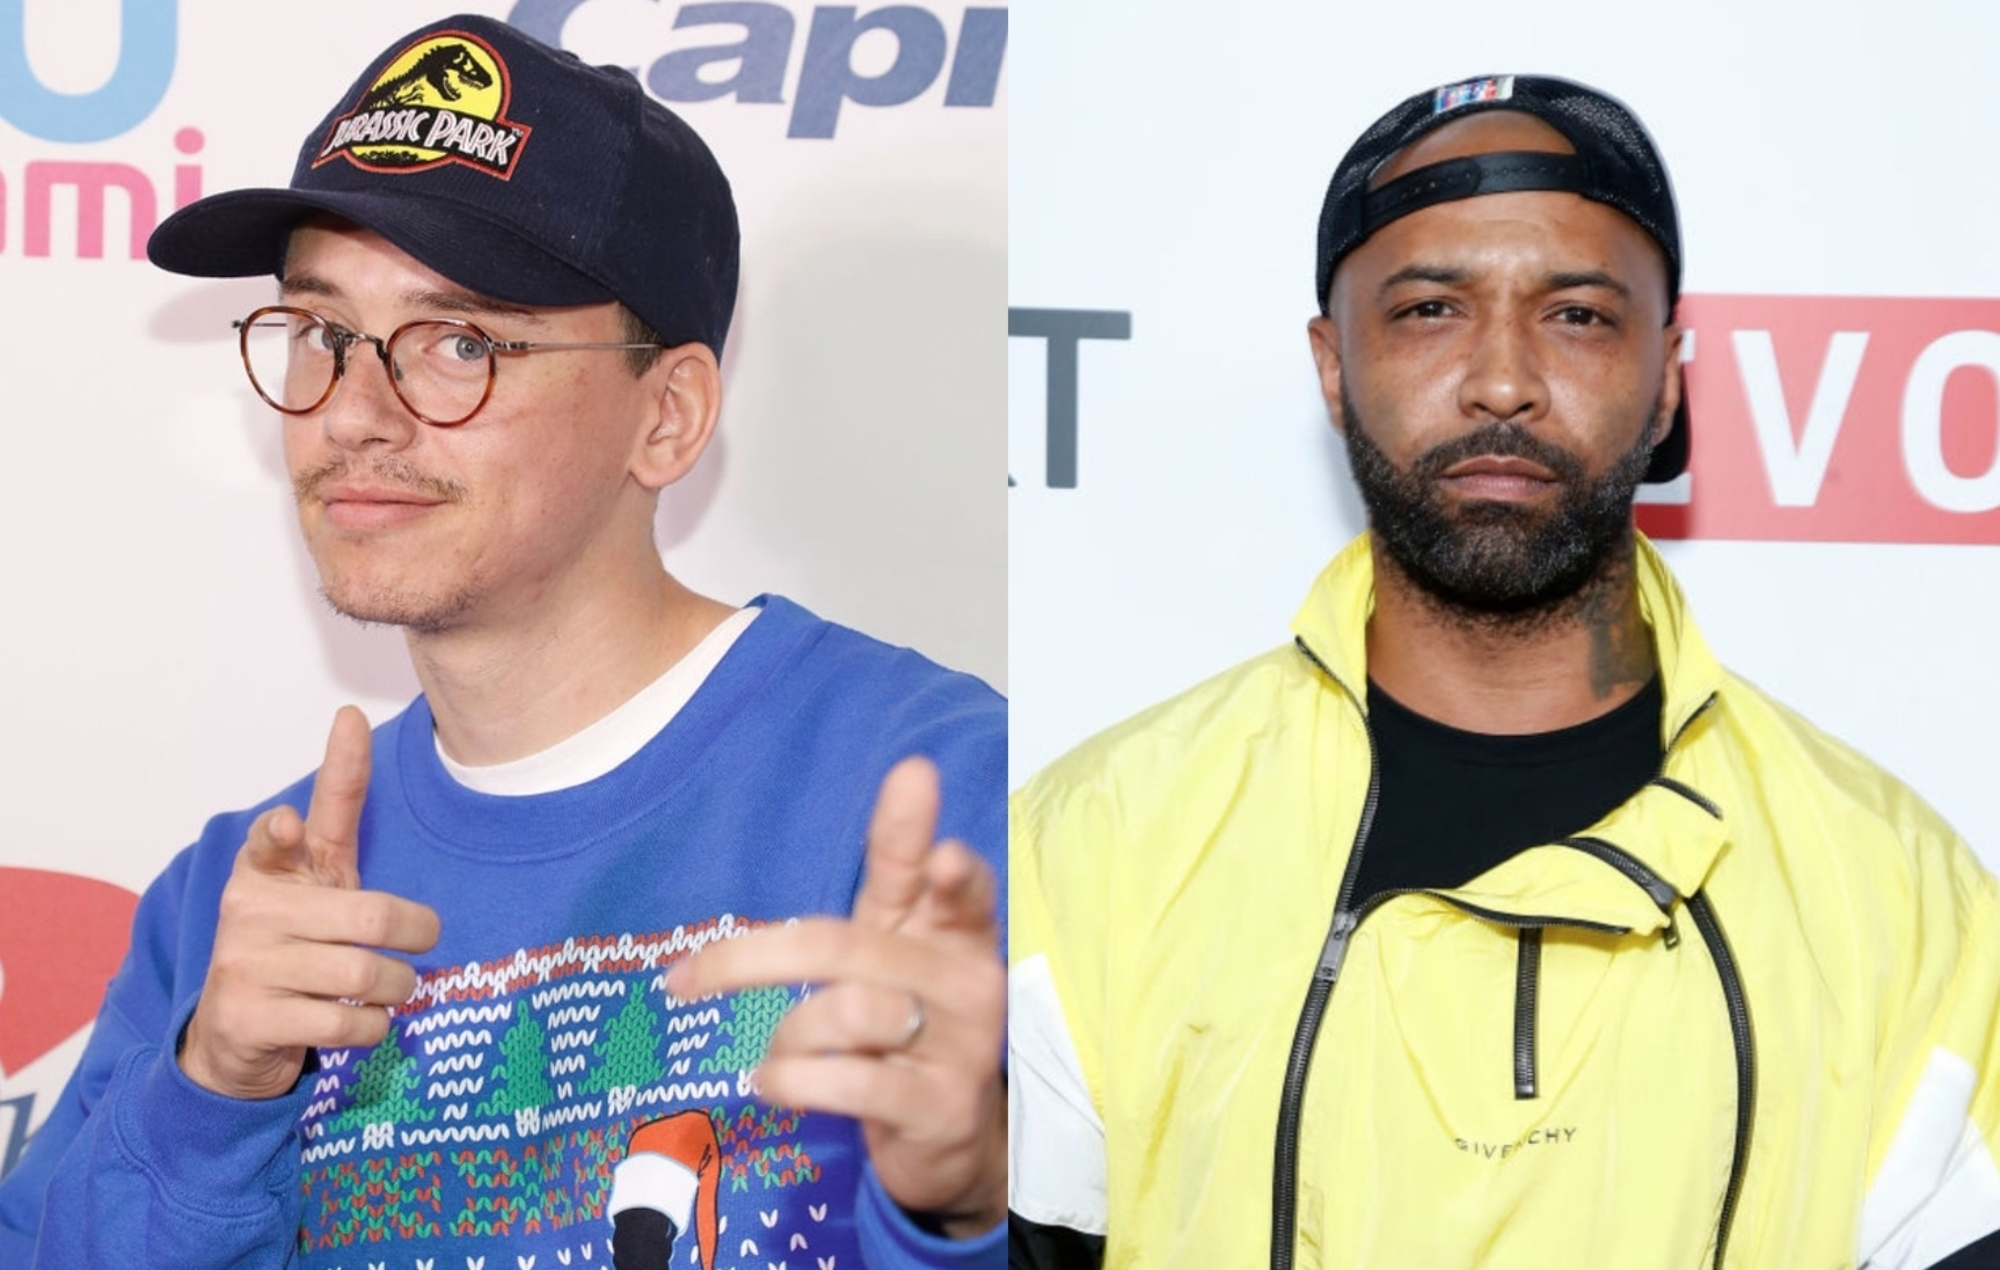 Logic Says Joe Budden S Words Make People Want To Kill Themselves